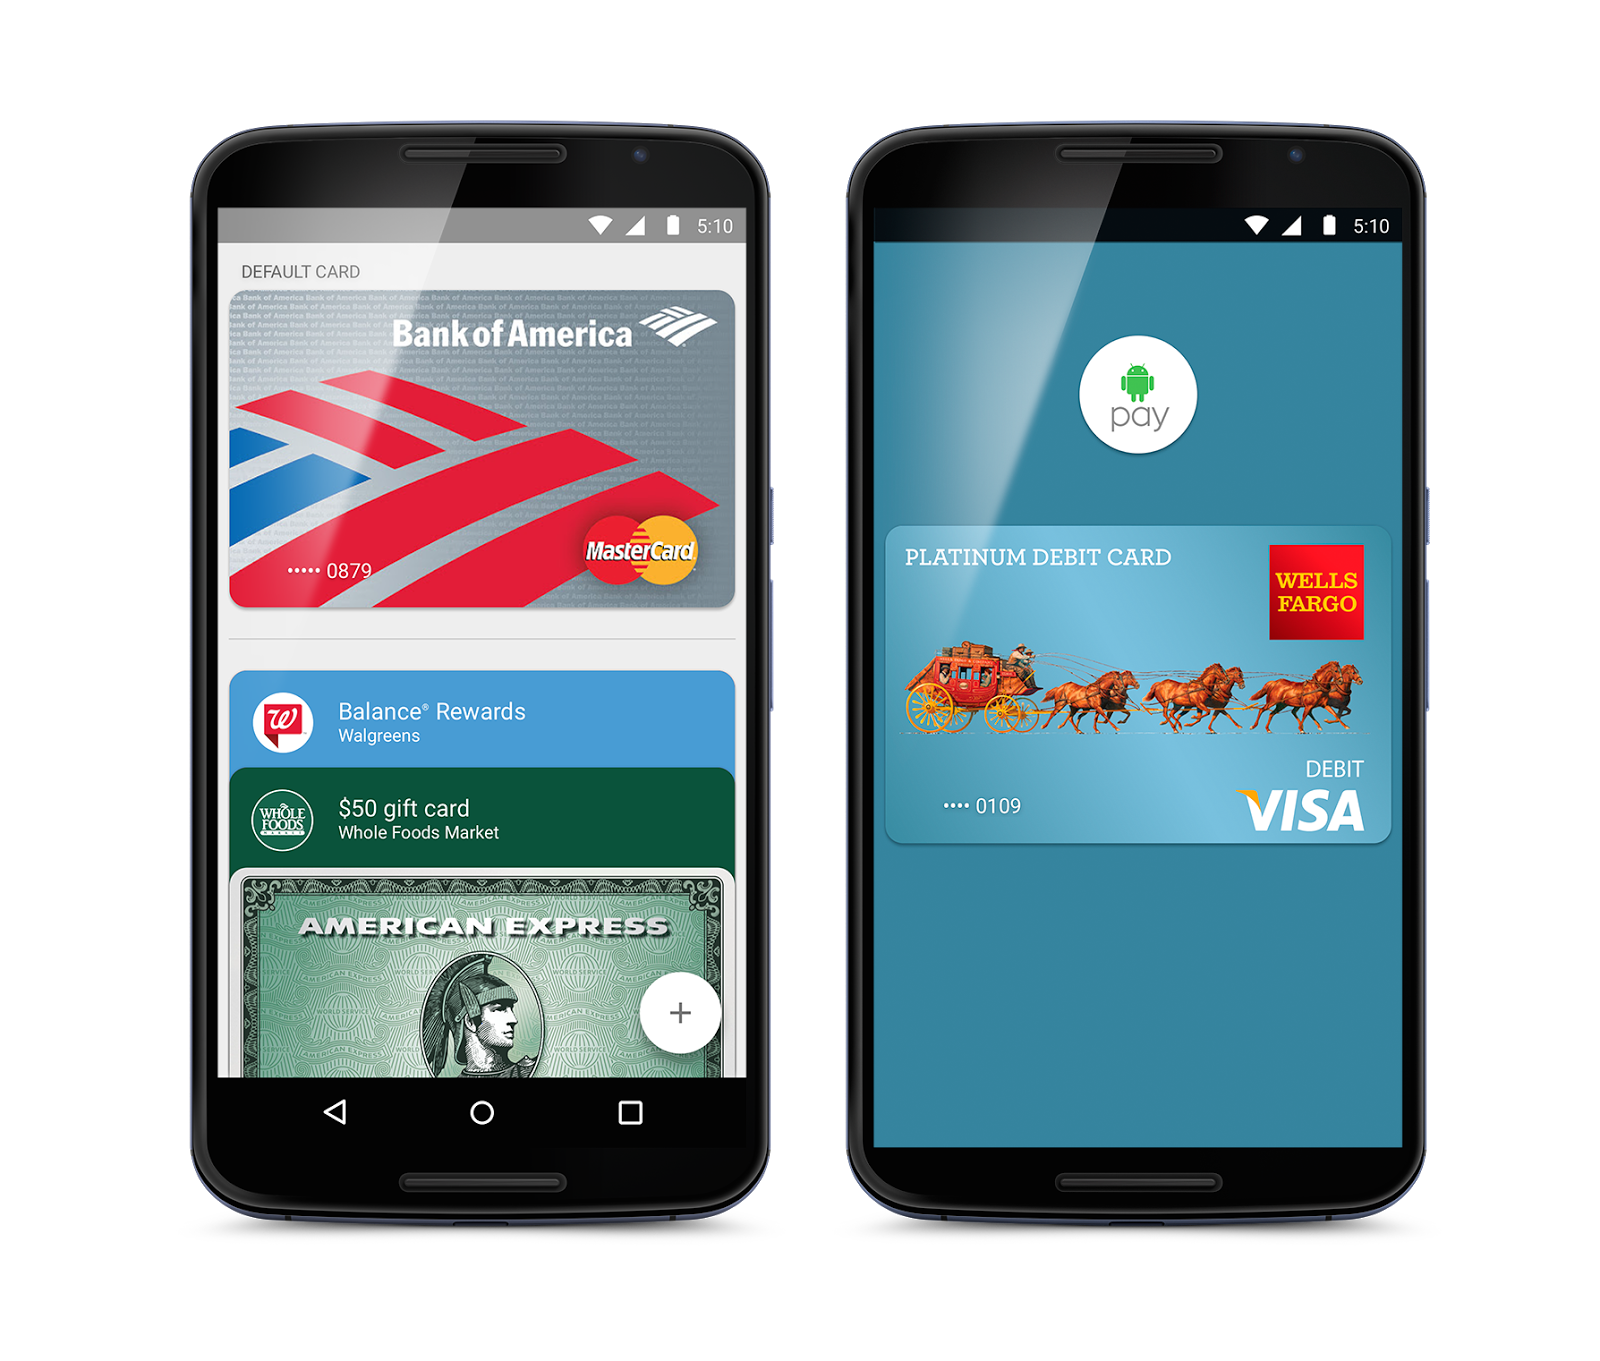 All cards on one card - Previously Wallet Worked With Basically Any Card Or Bank Because It Utilized A Virtual Mastercard Account On The Front End Of The Nfc Transaction